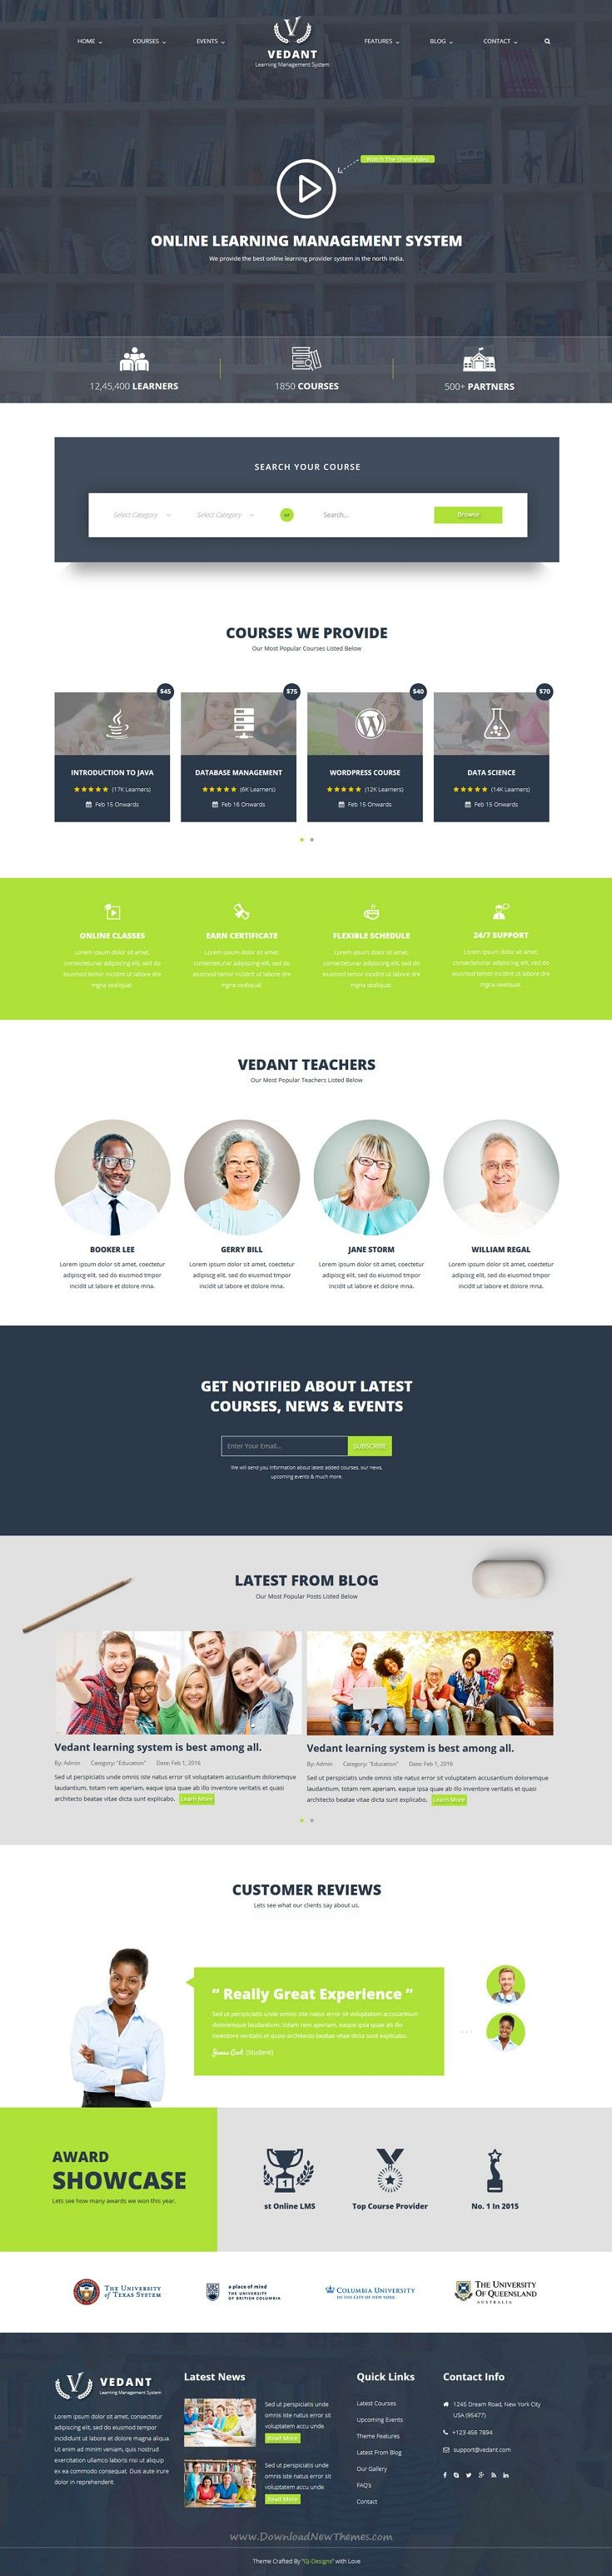 free web templates for employee management system